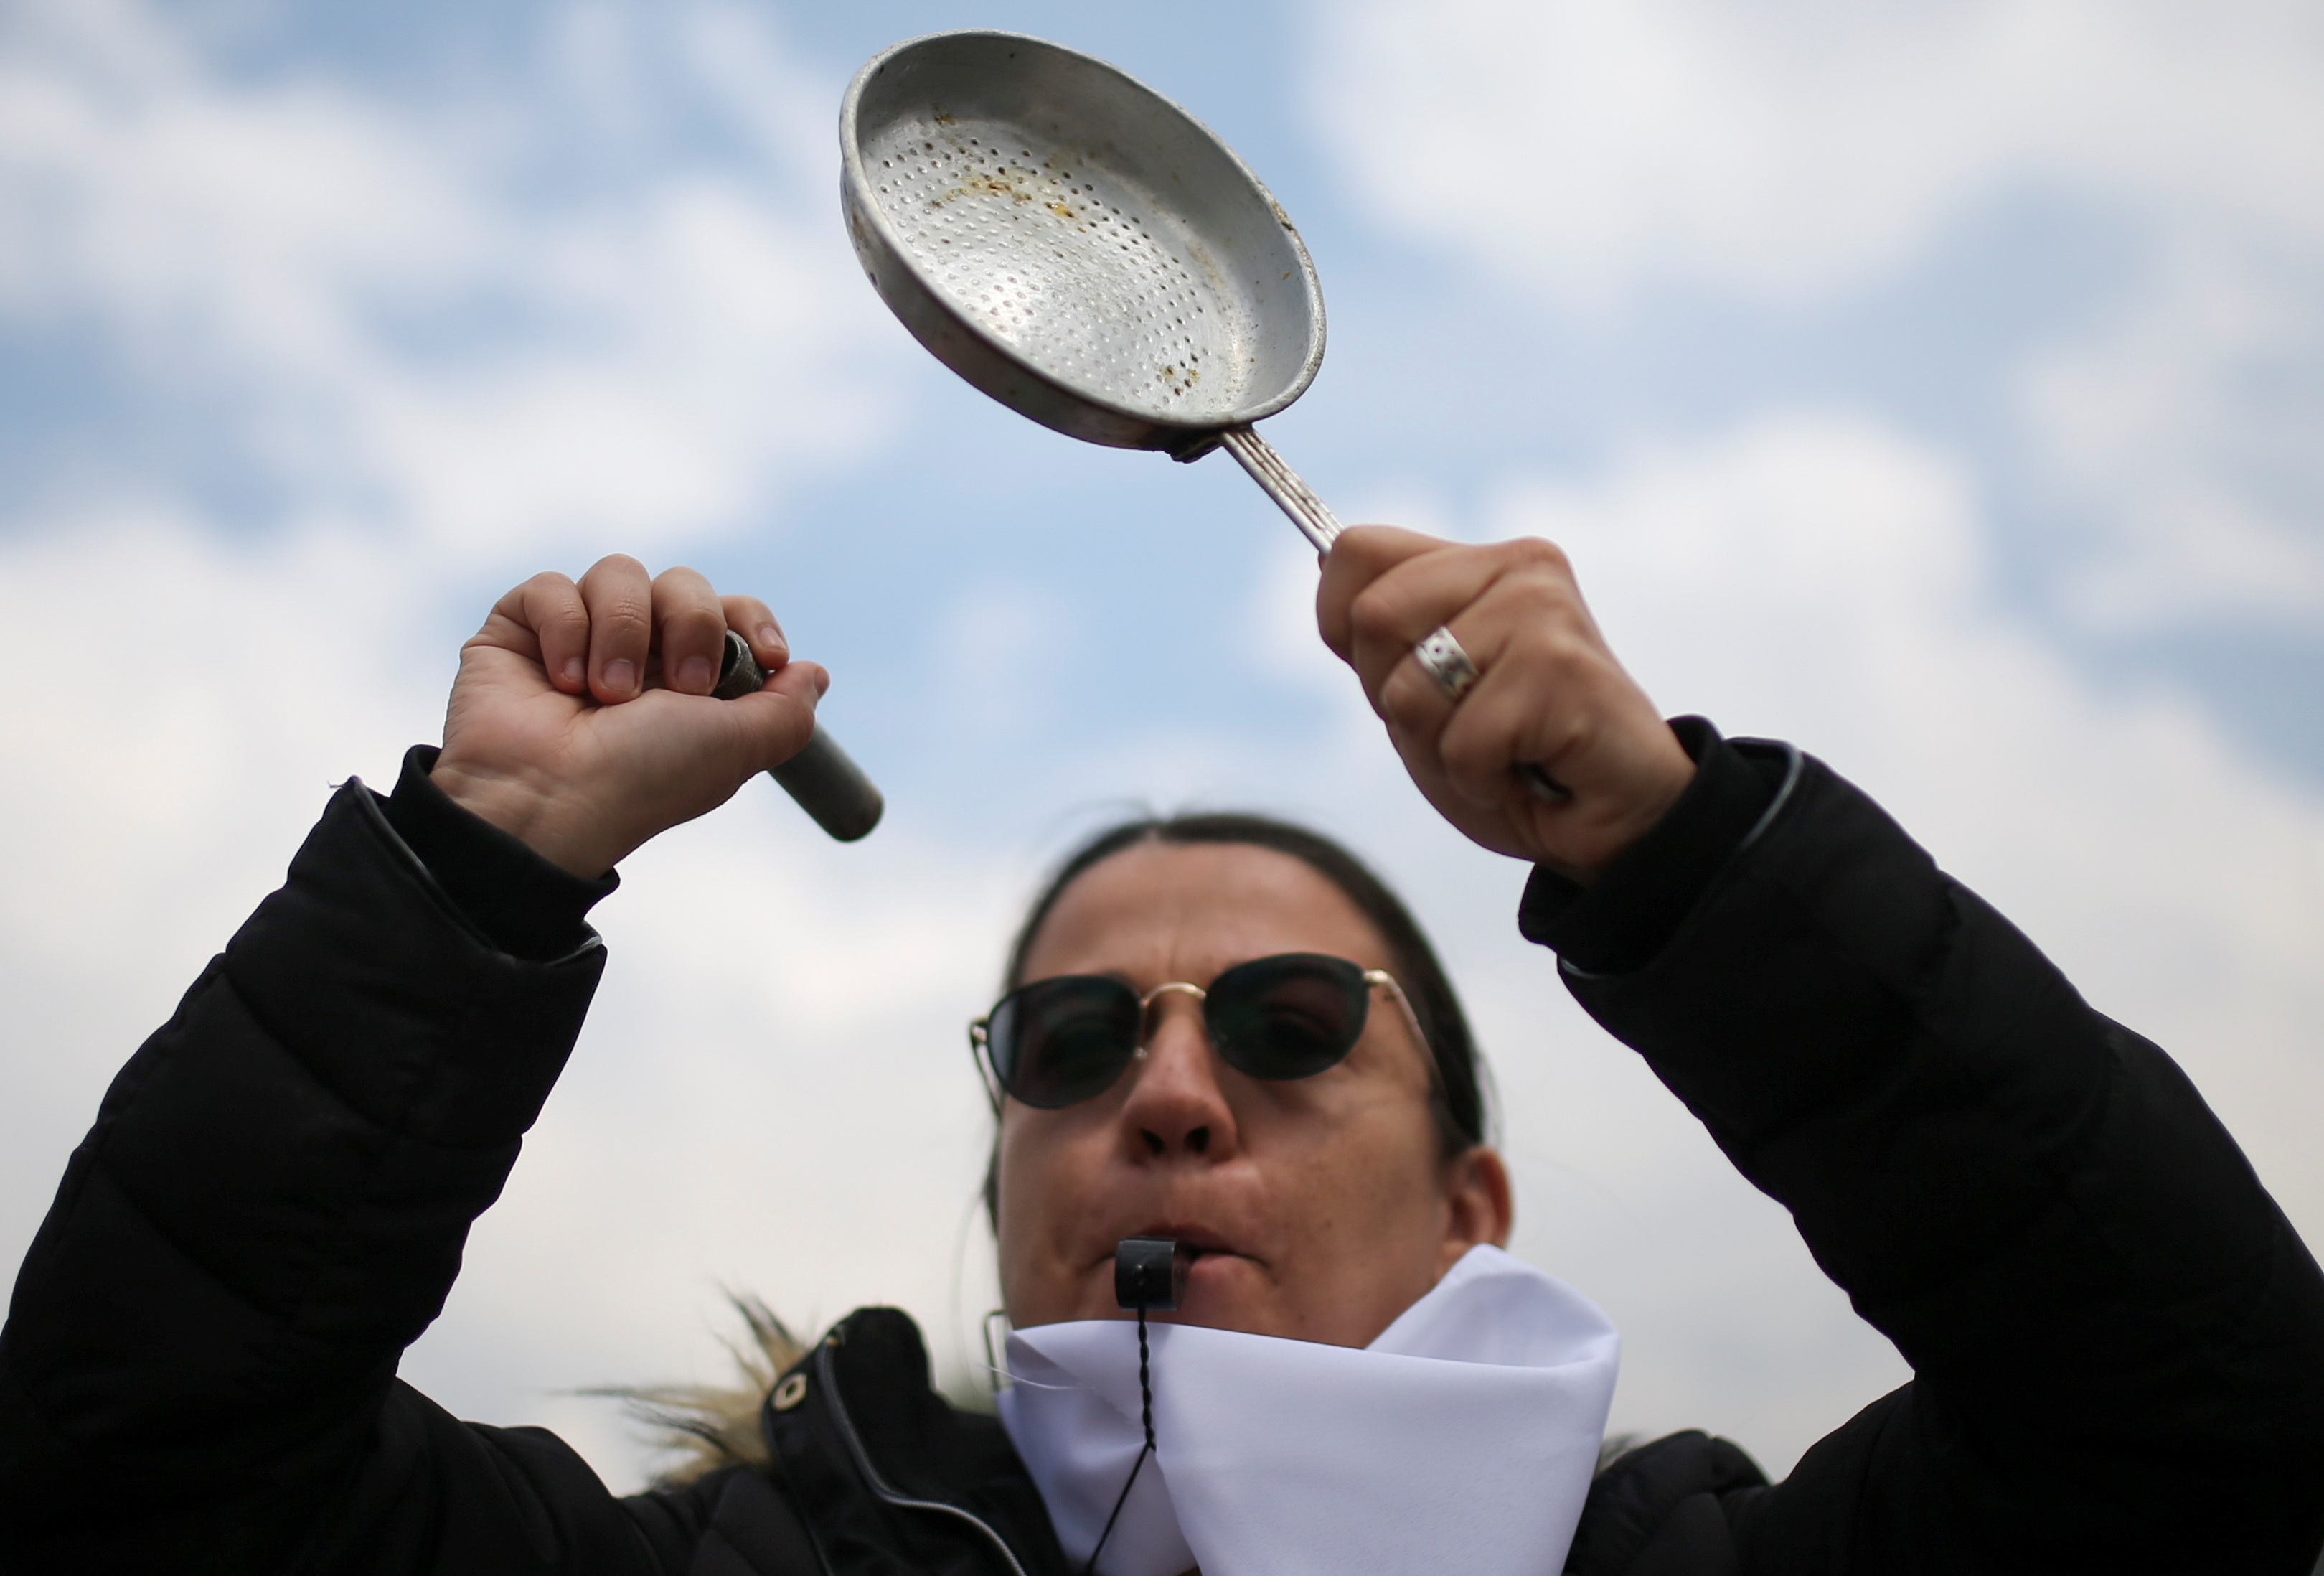 A demonstrator bangs a pot during a protest for a national strike, in Bogota, Colombia, November 21, 2019. REUTERS/Luisa Gonzalez